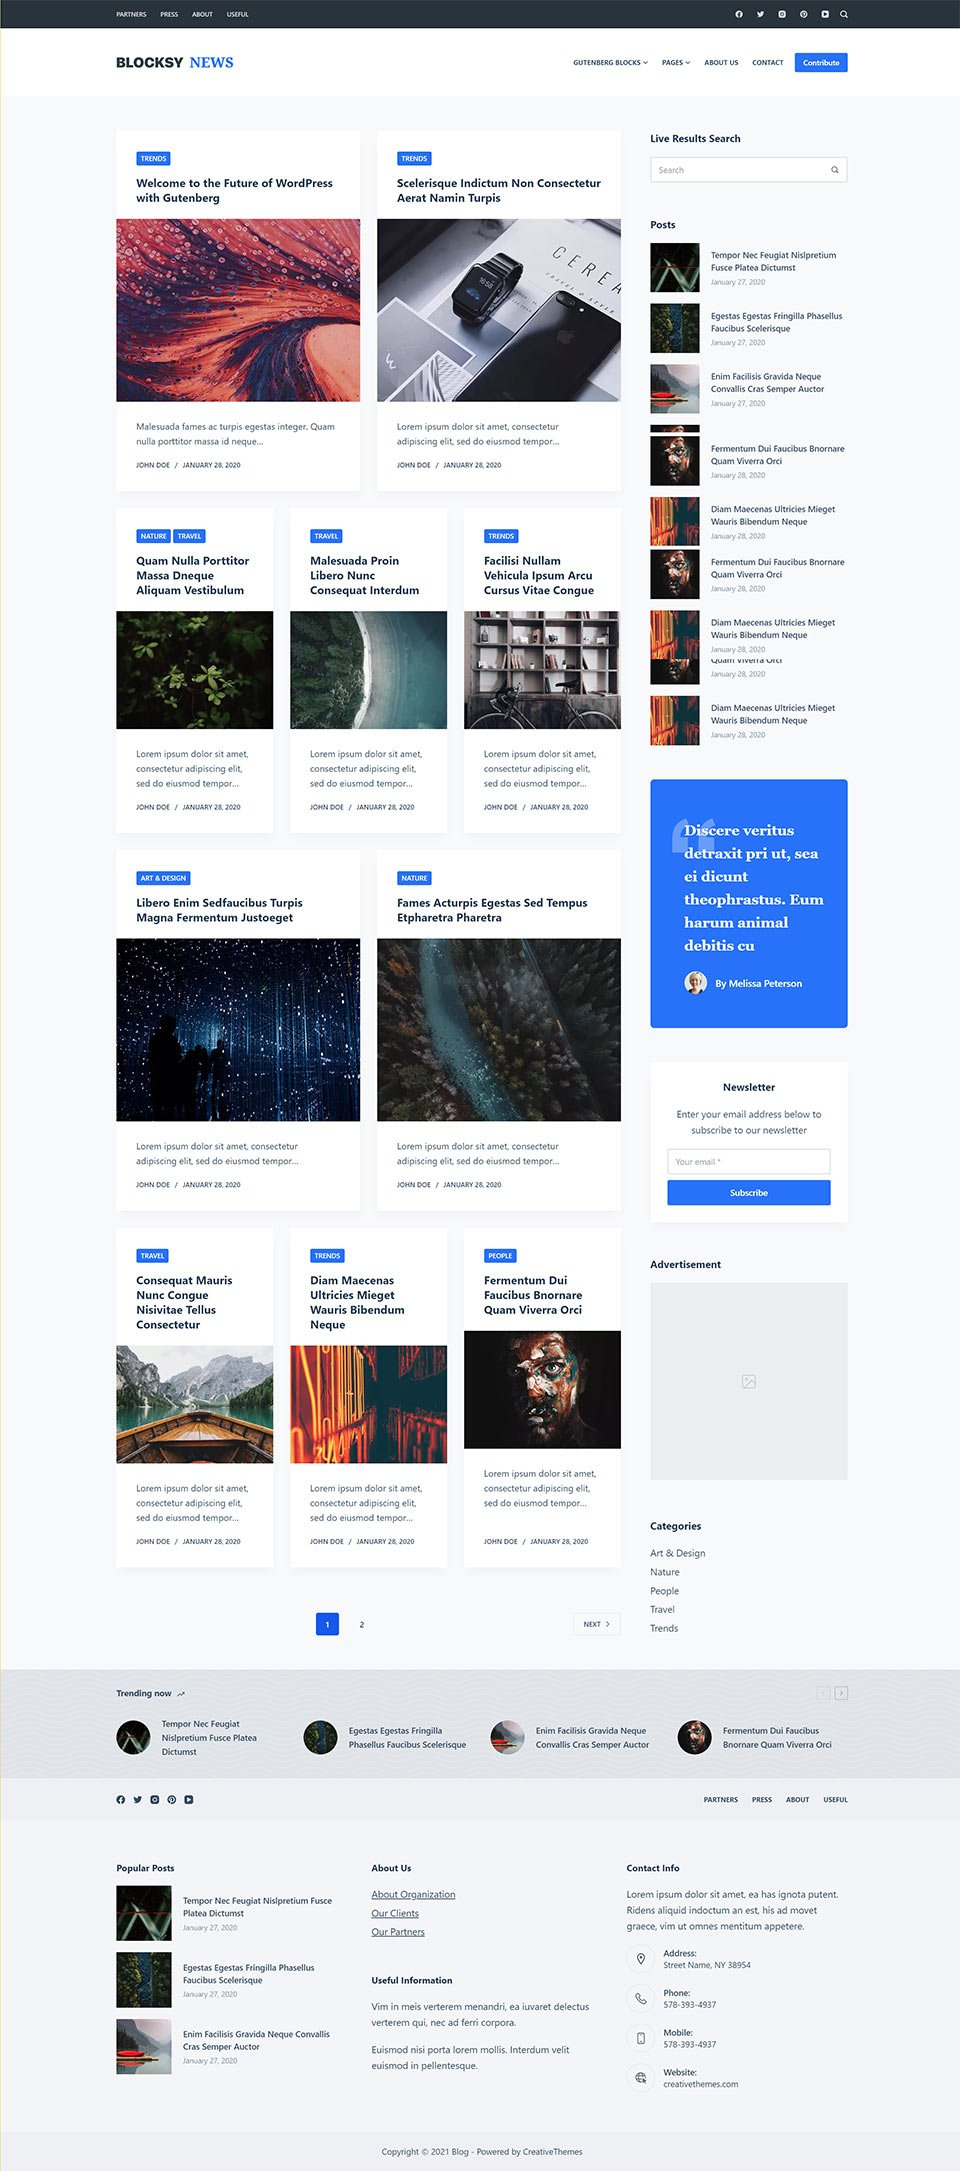 the-best-free-wordpress-themes-available-in-2021-7 The Best Free WordPress Themes Available in 2021